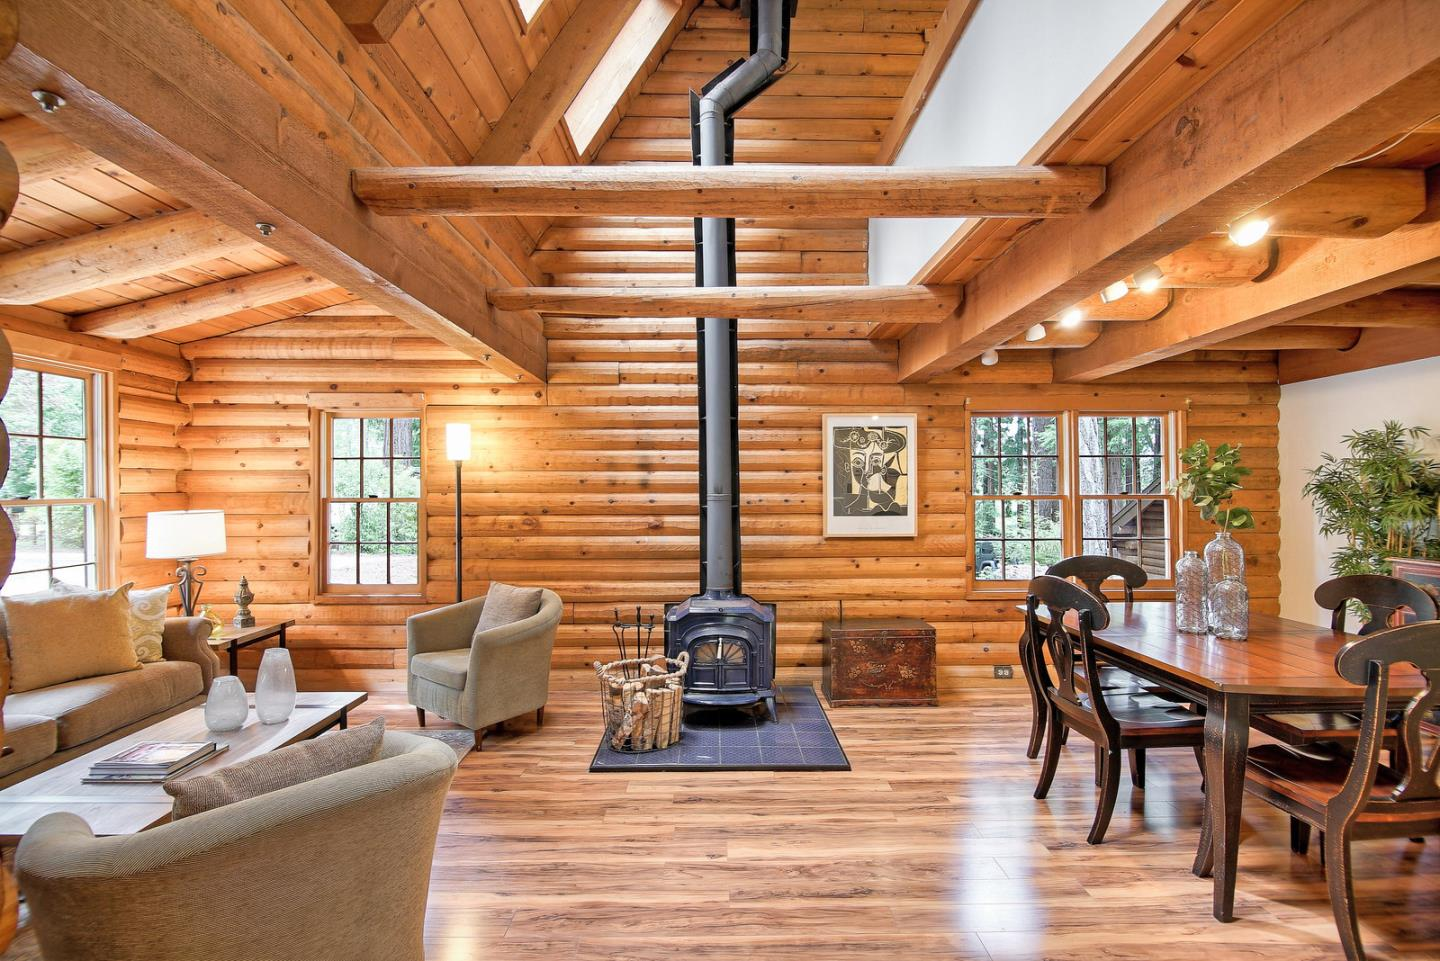 Set on a sunny knoll among the redwoods in a exceptional south Felton neighborhood, you'll love the abundance of charm and character at this authentic log home. The fantastic 2+ acre lot is fully usable with patios, decks, as well as plenty of space for gardening and outdoor activities. There is direct access to the TRAIL NETWORK that connects Henry Cowell State Park to Marshall Field and Wilder Ranch State Park. Hikers and mountain bikers LOVE this area! UCSC campus is less than 1.5 miles away when traveled by trail. Live like you're on vacation every day at this very special mountain retreat. Recent updates include new front deck, new rear deck, new paver patio, new flooring, new furnace, new kitchen counters, and new appliances. 2,124 sq ft of usable space that includes the detached 528 square foot studio with a 3rd bathroom, and 144 square foot heated sun-room. 6 miles to Santa Cruz, and 6.5 miles to Highway 17 in Scotts Valley. Excellent schools k-12.